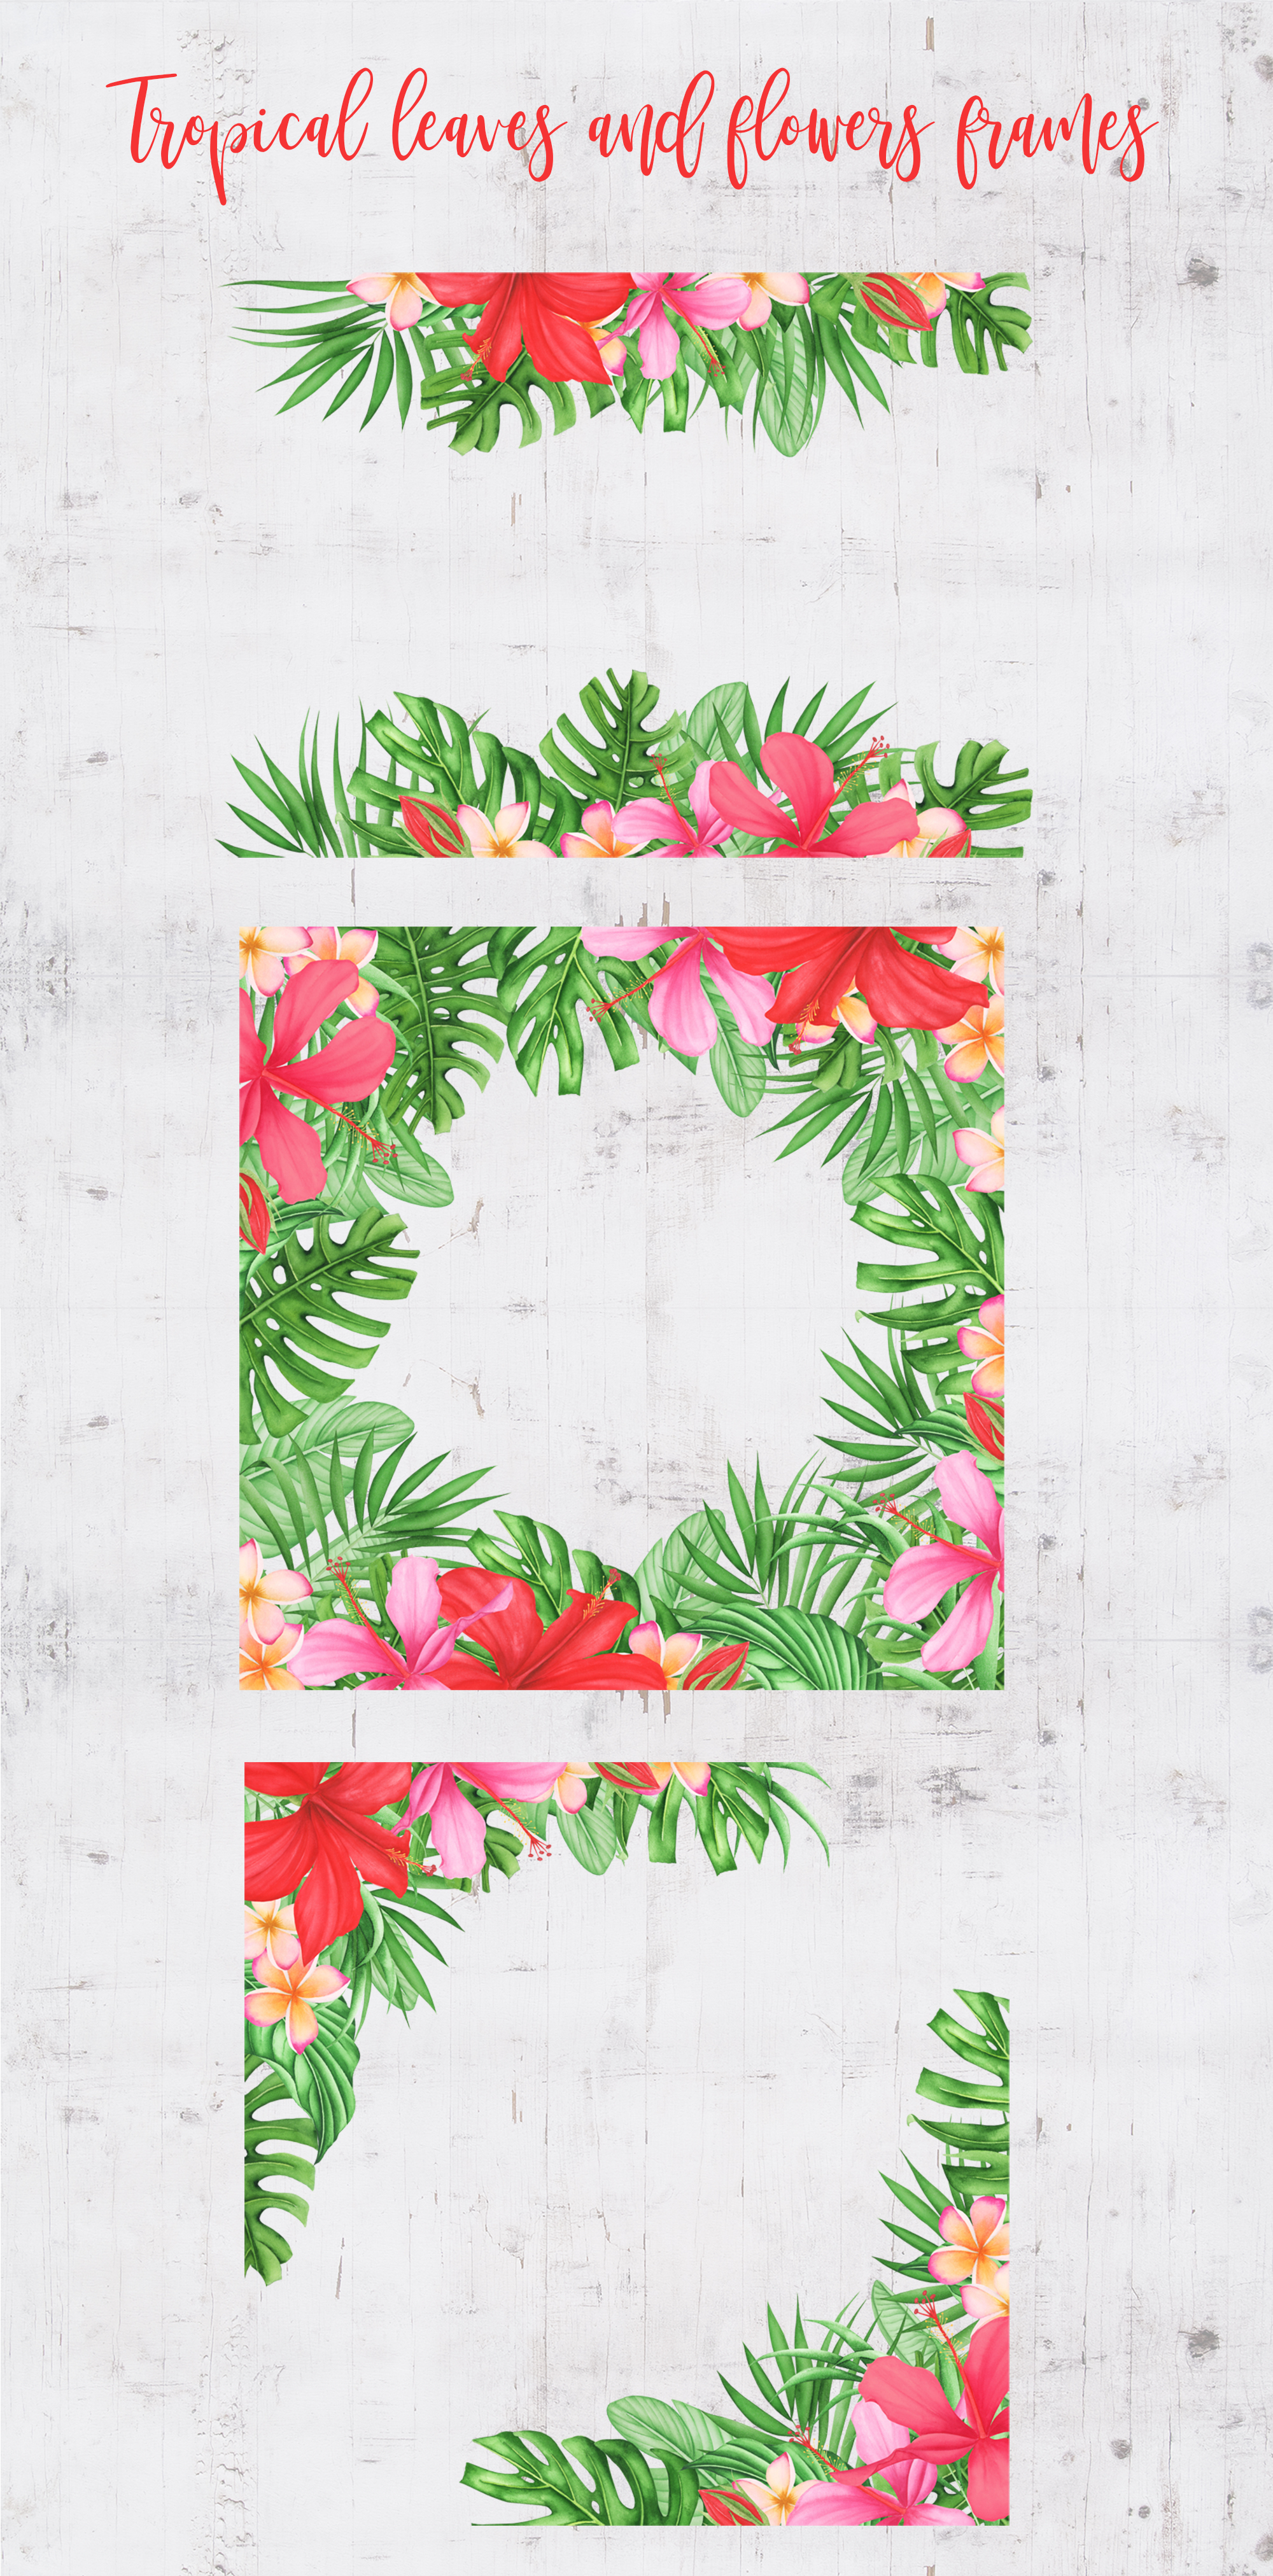 Tropical leaves and flowers clipart example image 6